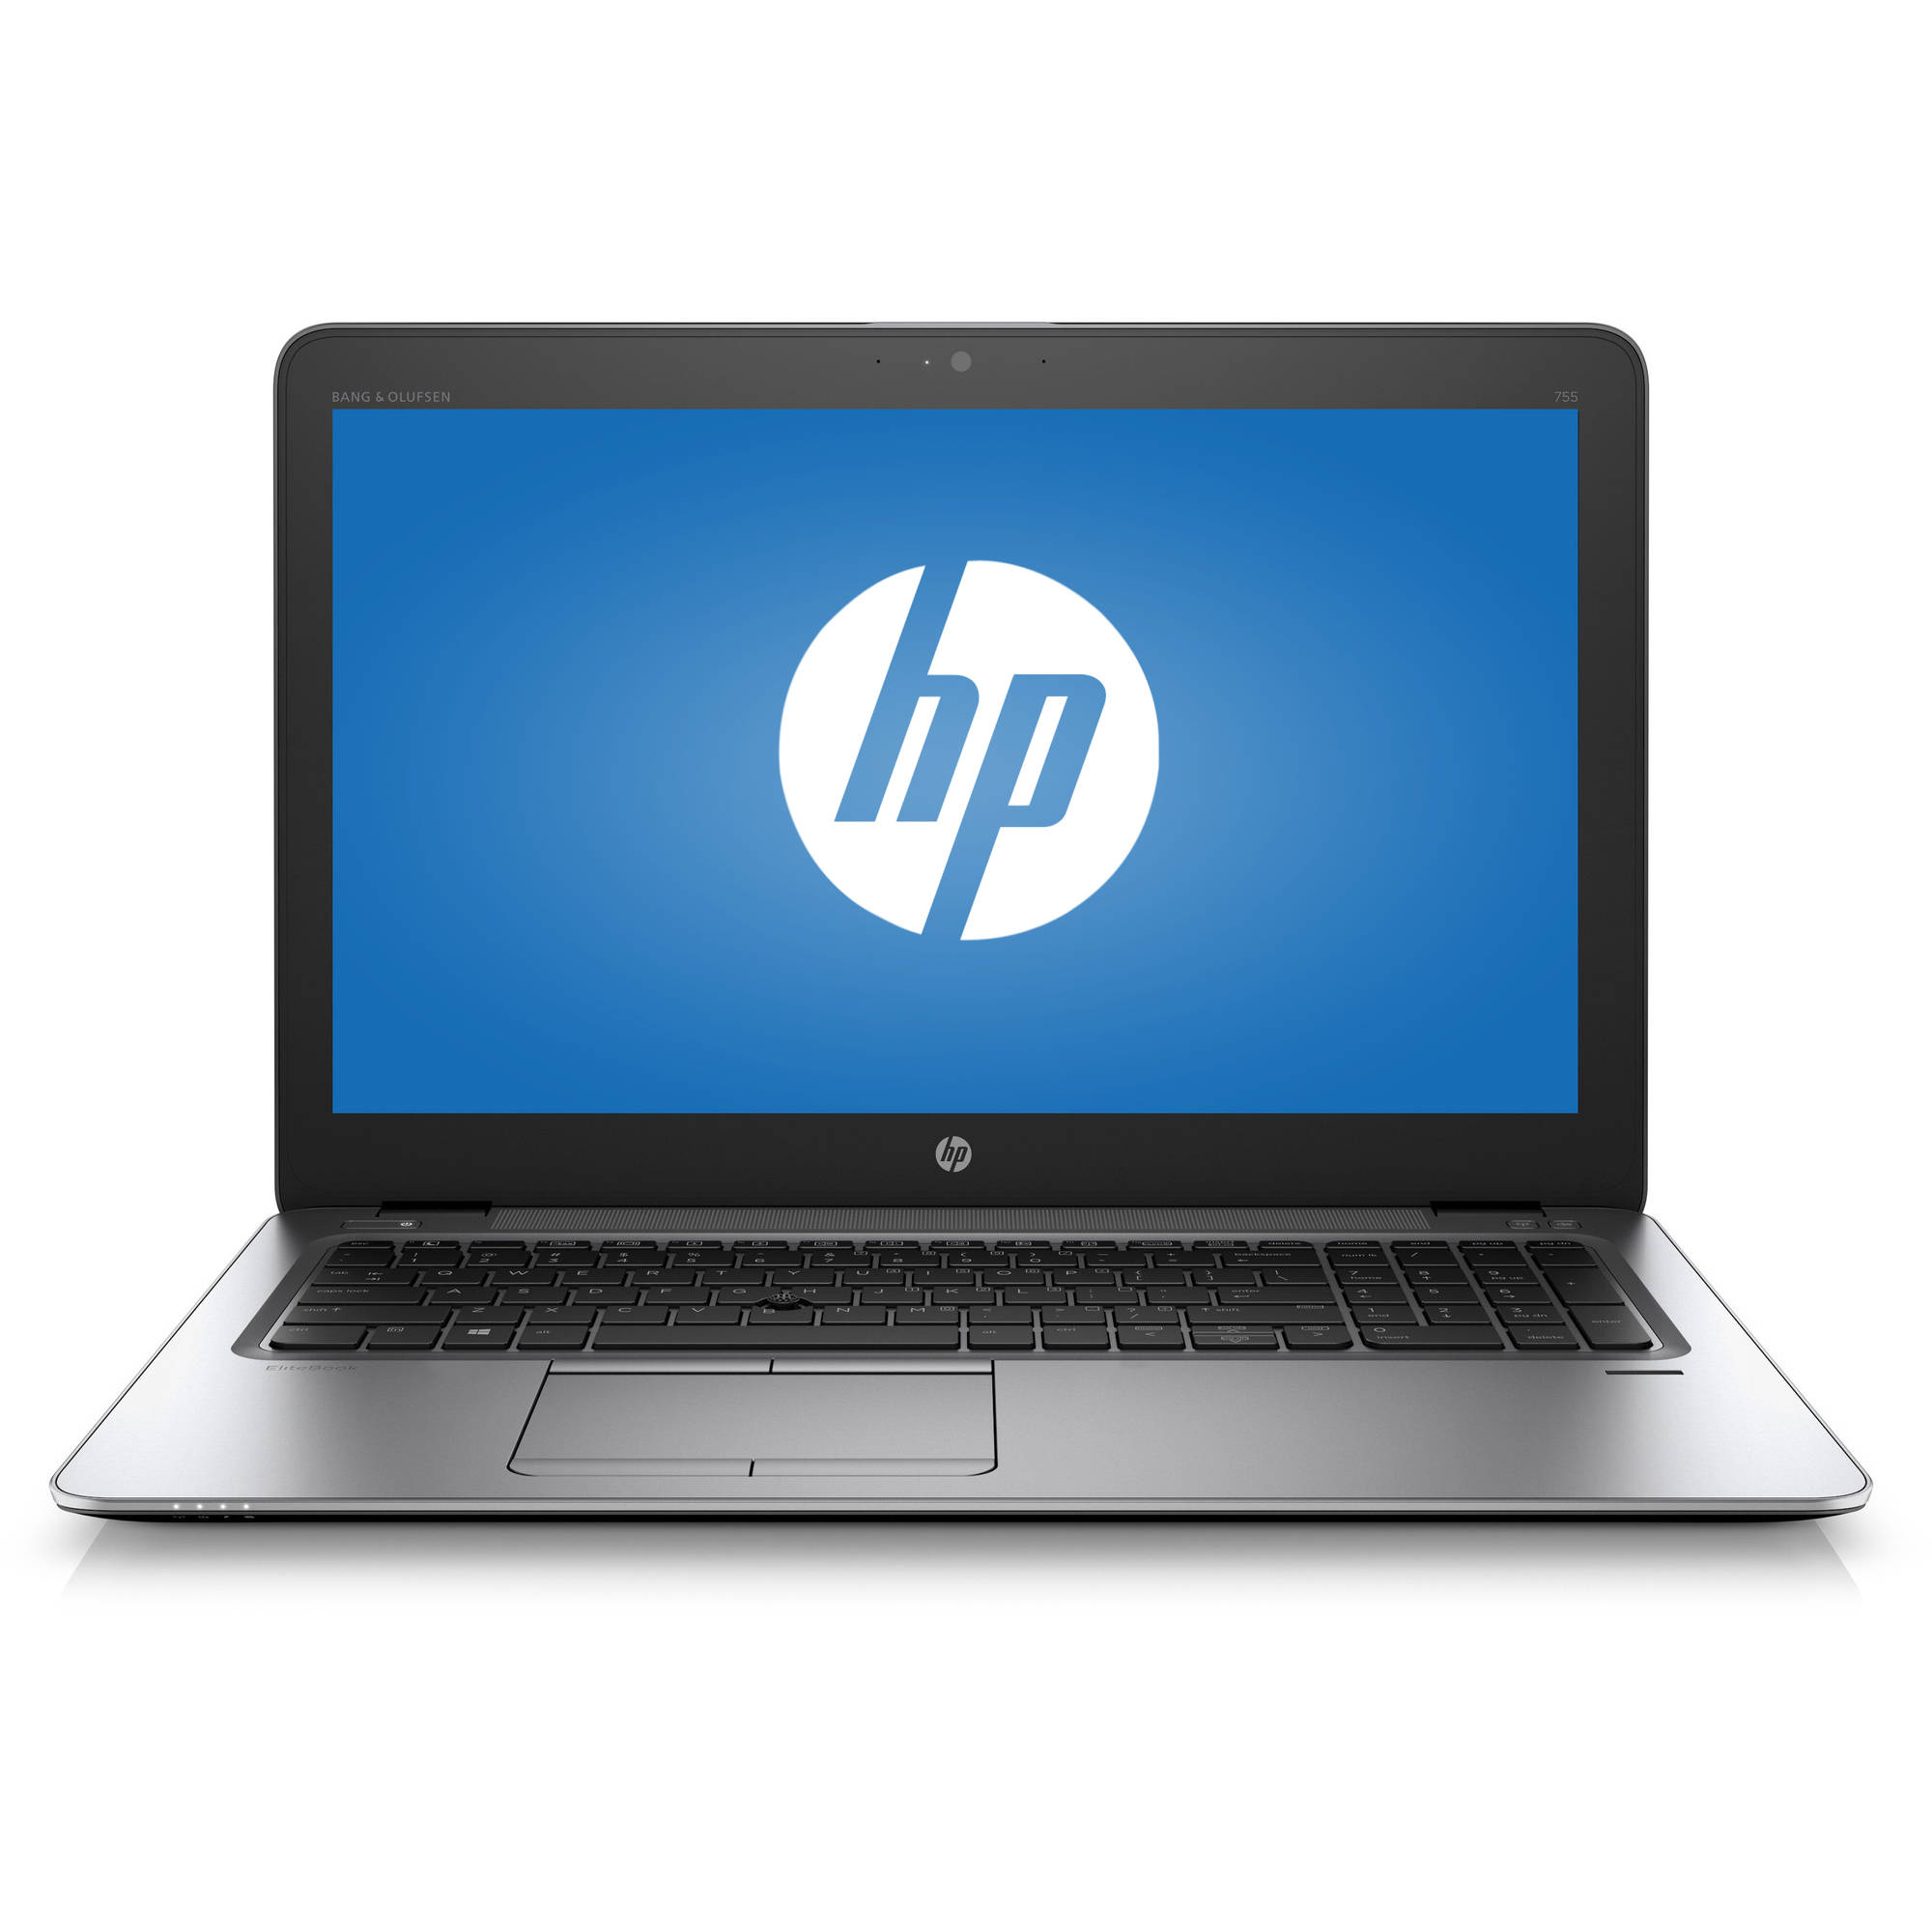 "HP Silver 15.6"" EliteBook 755 G3 Laptop PC with AMD A12-8800B Quad-Core"